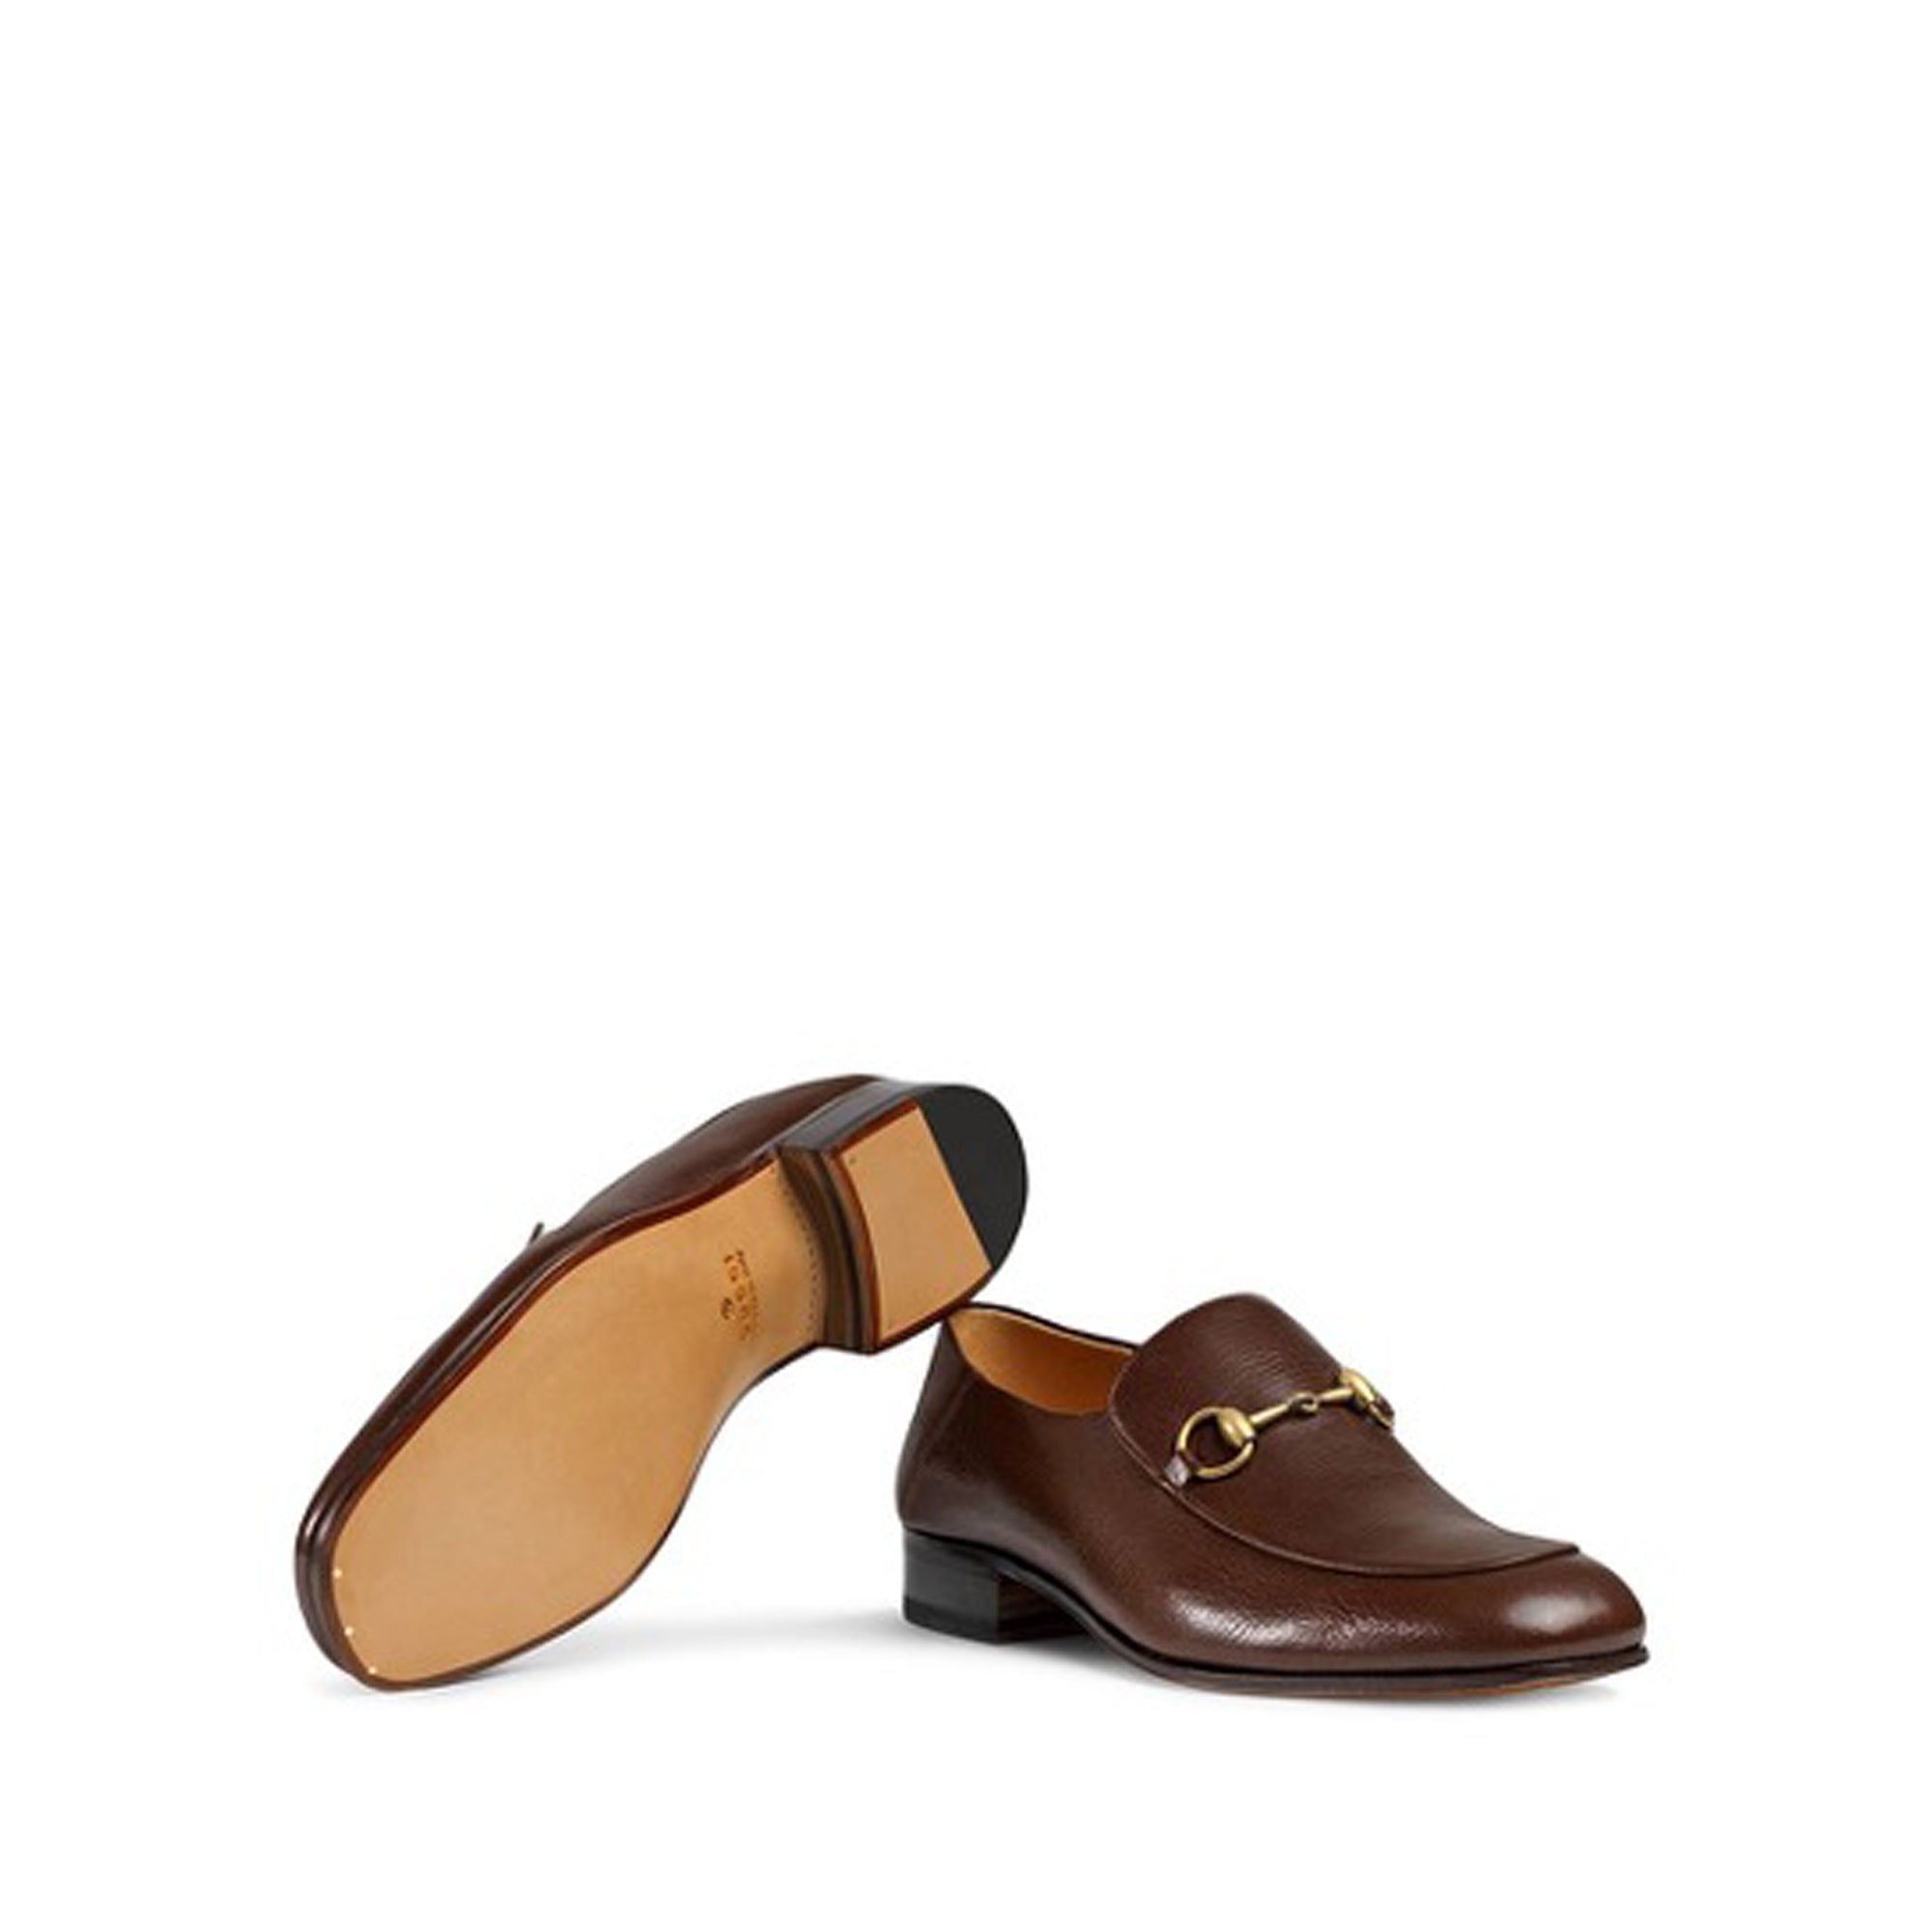 Gucci Brown Horsebit Loafers